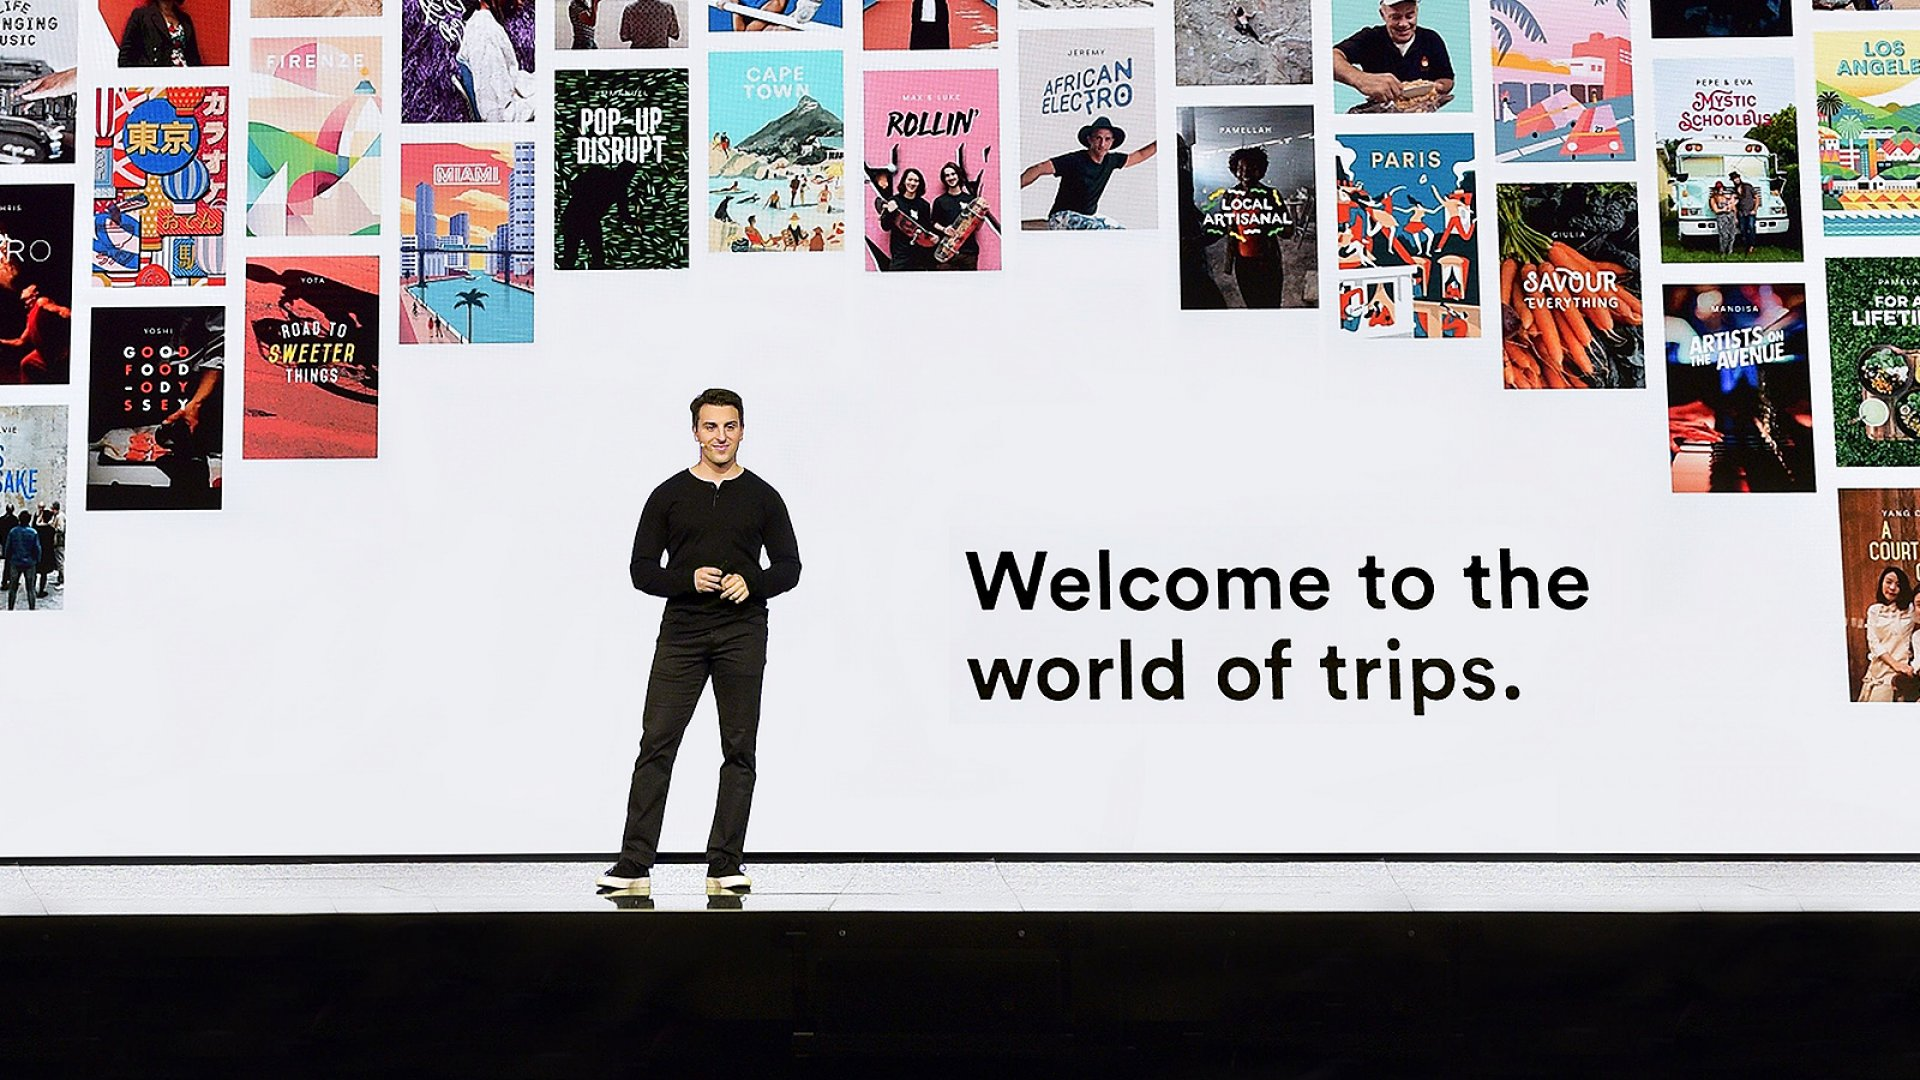 5 Clever But Often Overlooked Tactics That Airbnb, Facebook and Uber Used To Become Global Players